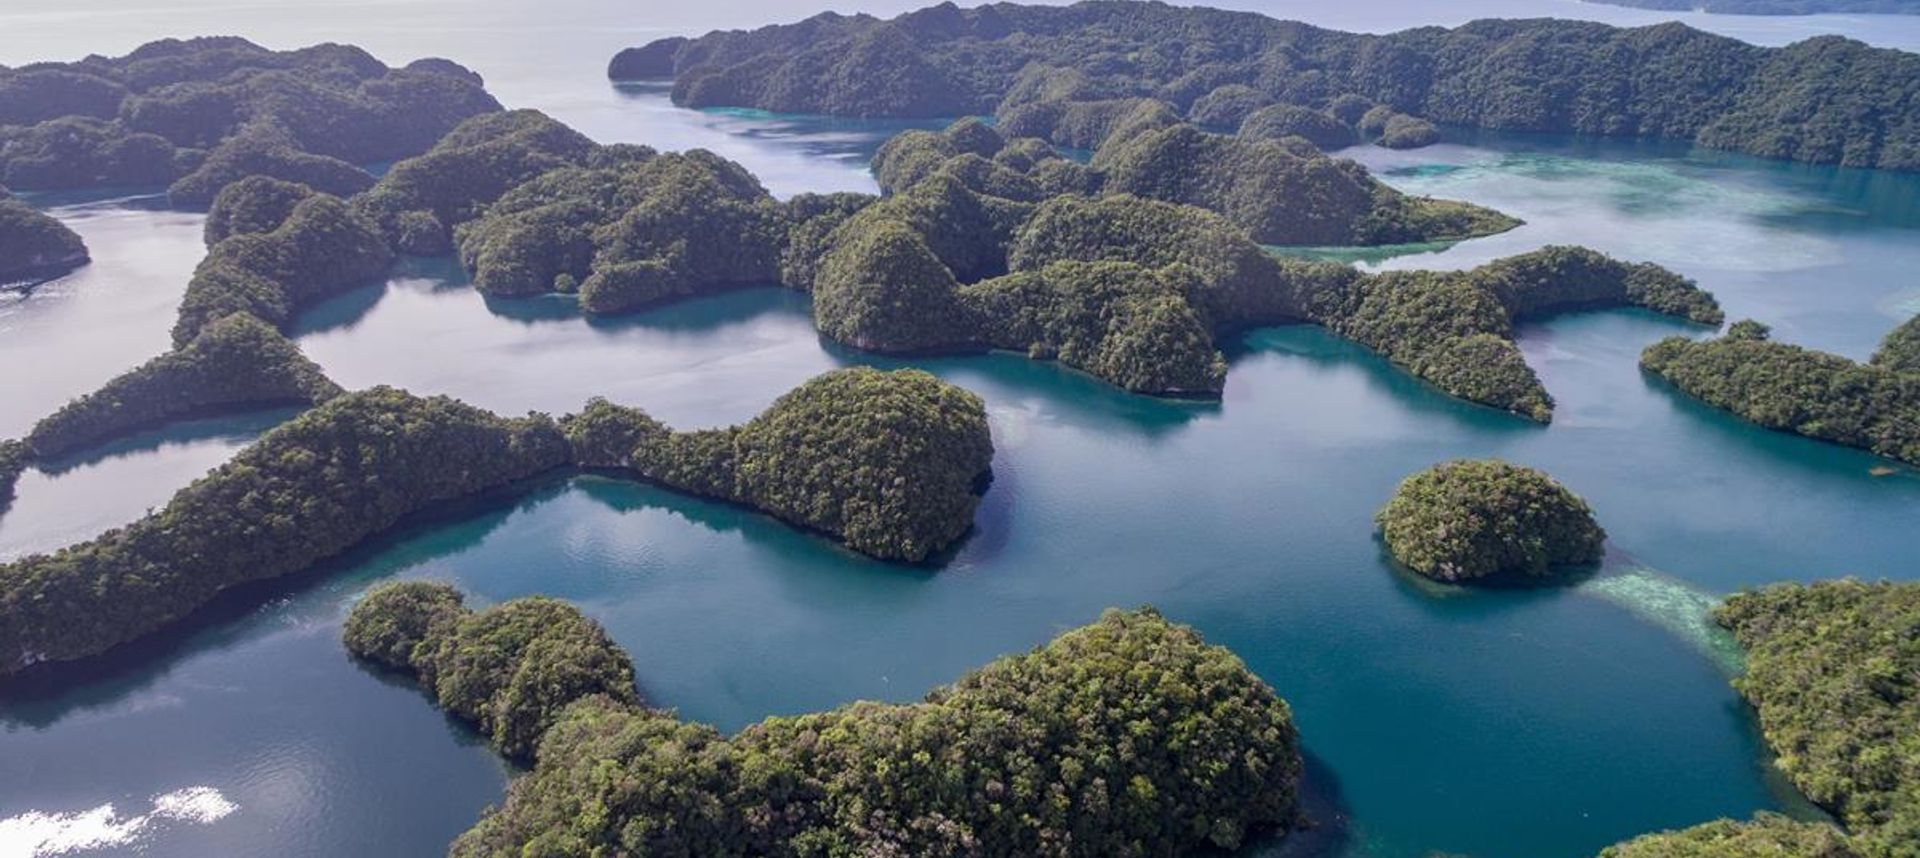 Aerial shot of Palau's famous Seventy Islands, Micronesia(dreamstime.com)